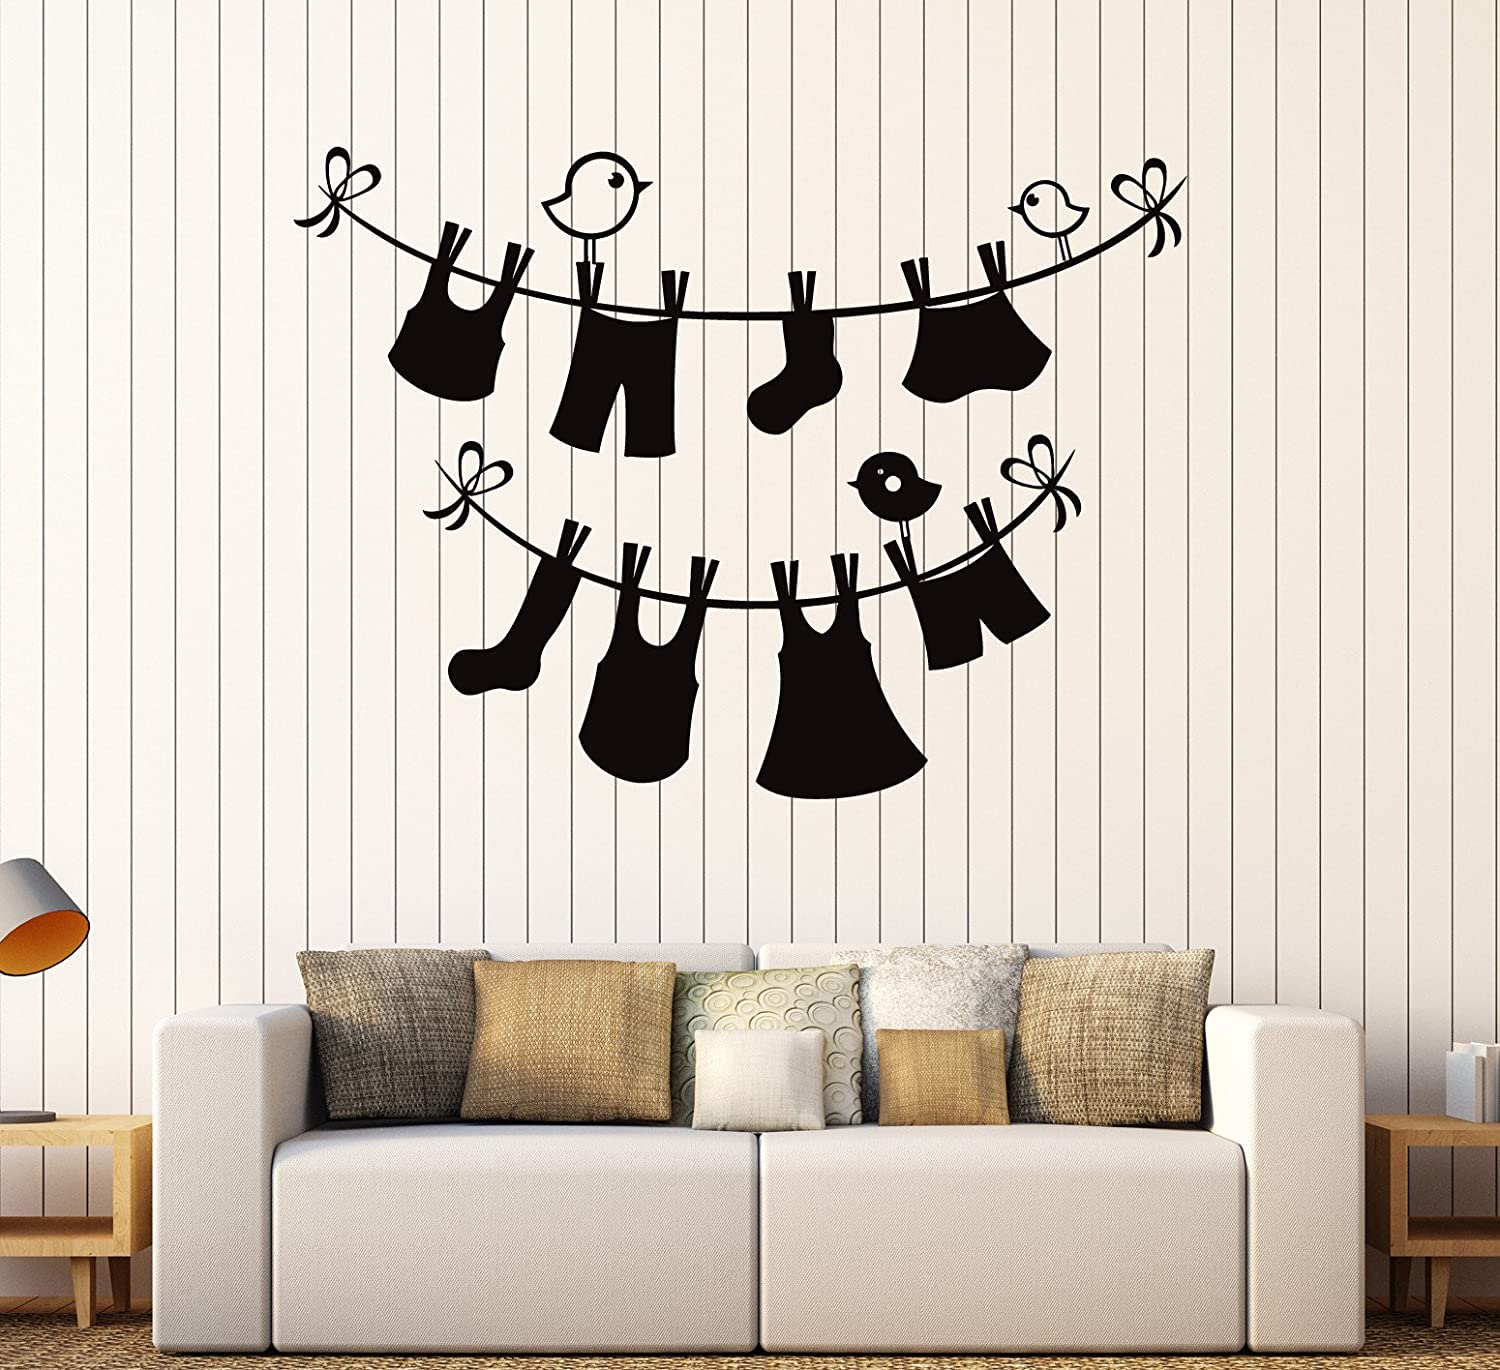 Vinyl Wall Decal Laundry Service Room Wash Things Stickers Large Decor (ig3918) Black